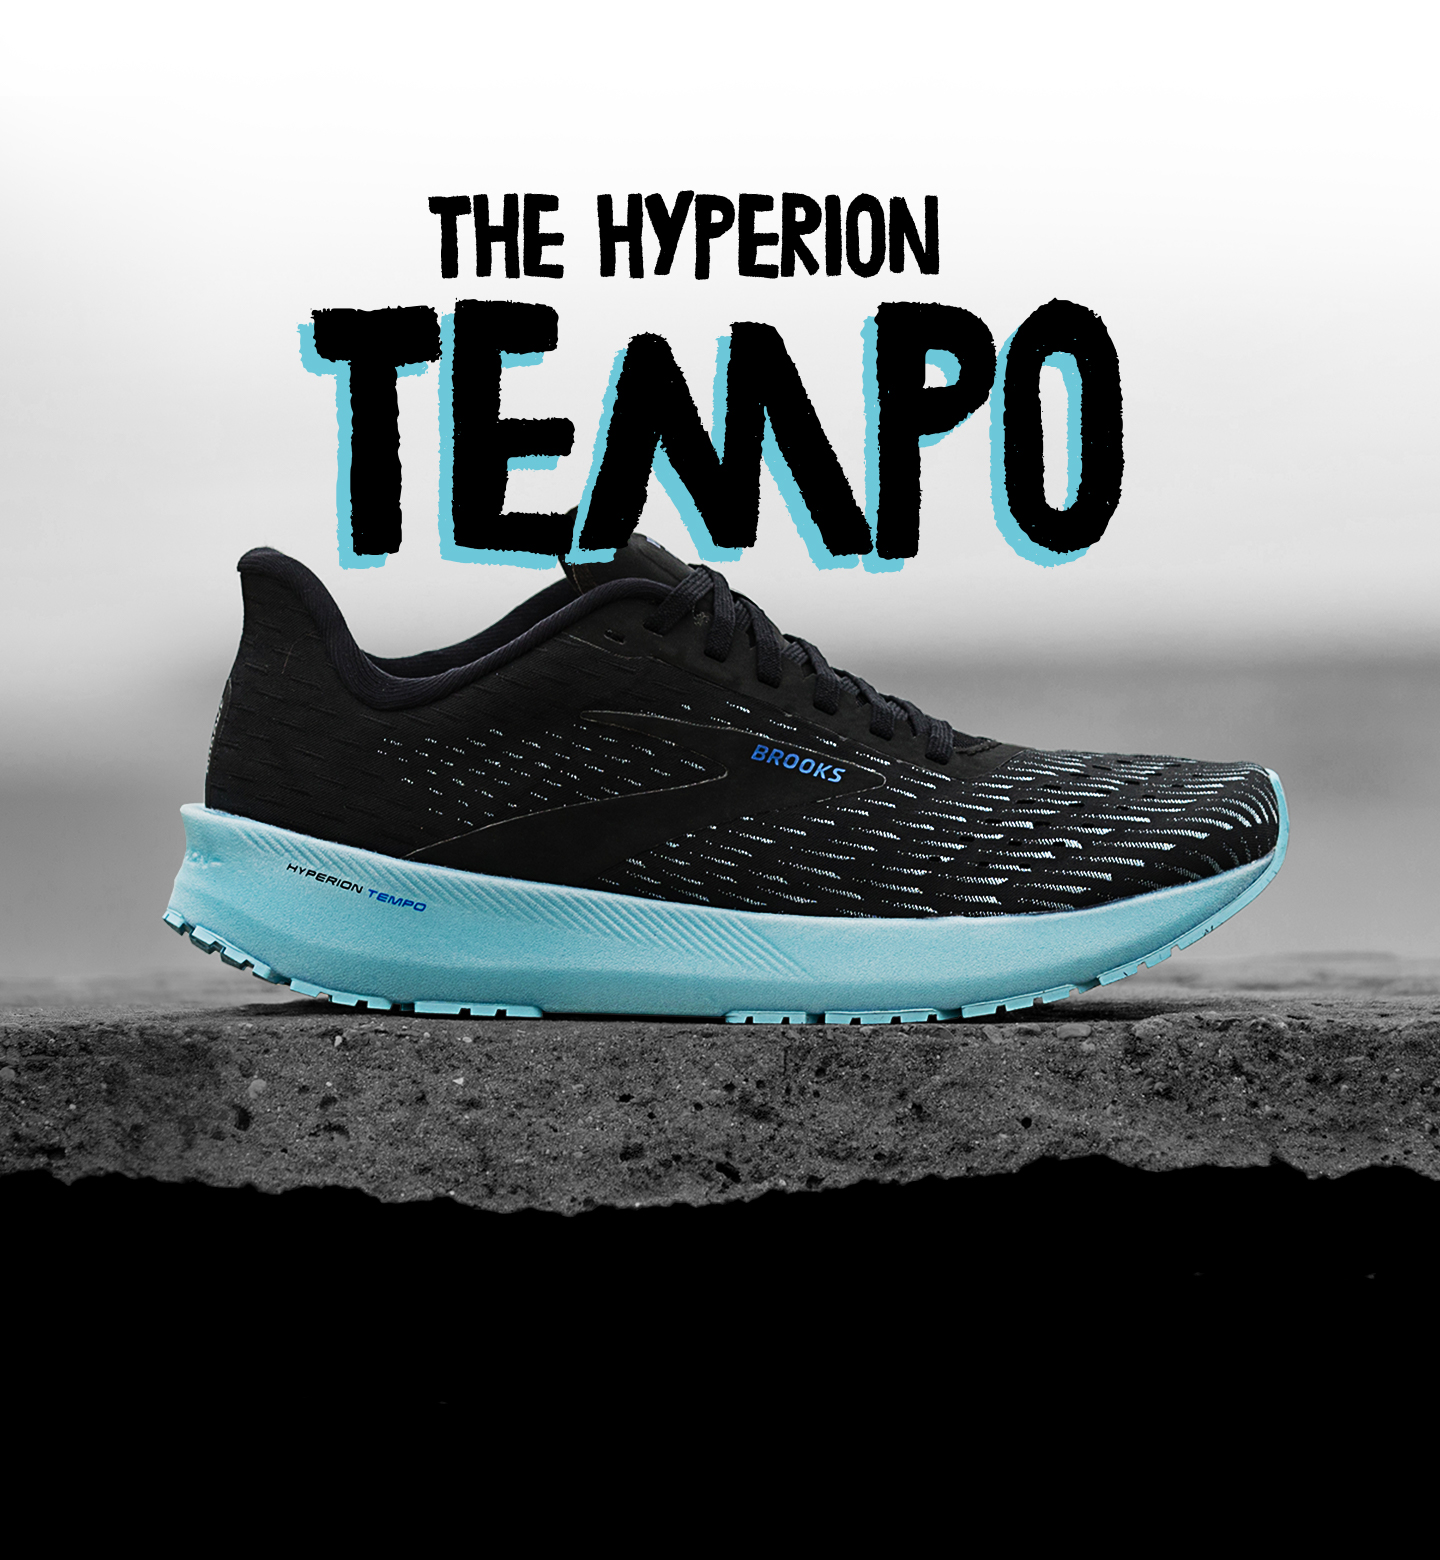 The Hyperion Elite in black and blue from the side; above the shoe, it reads 'The Hyperion Tempo'